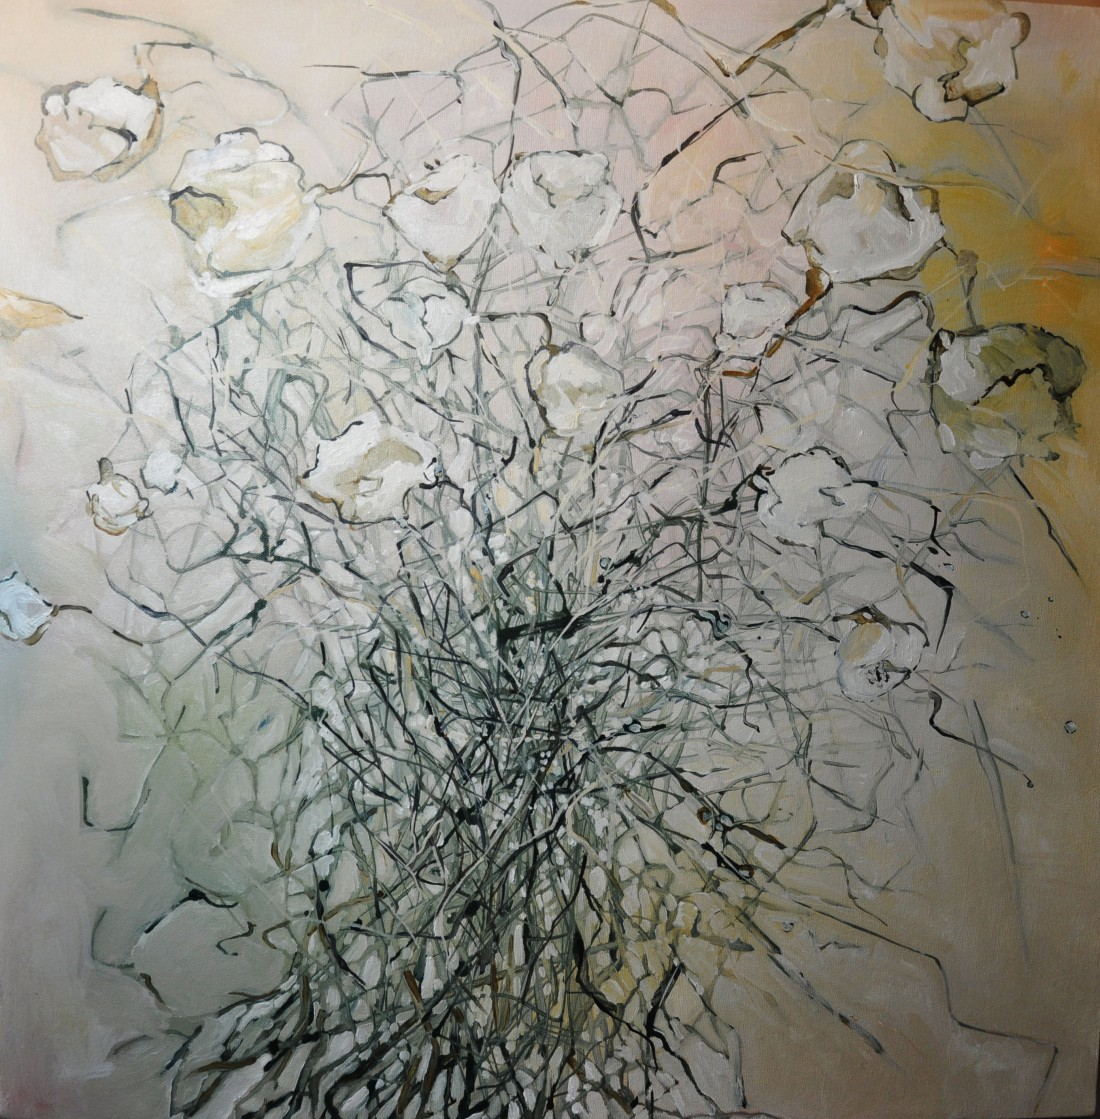 Valentines Tangle 24 by 24 Oil on Canvas